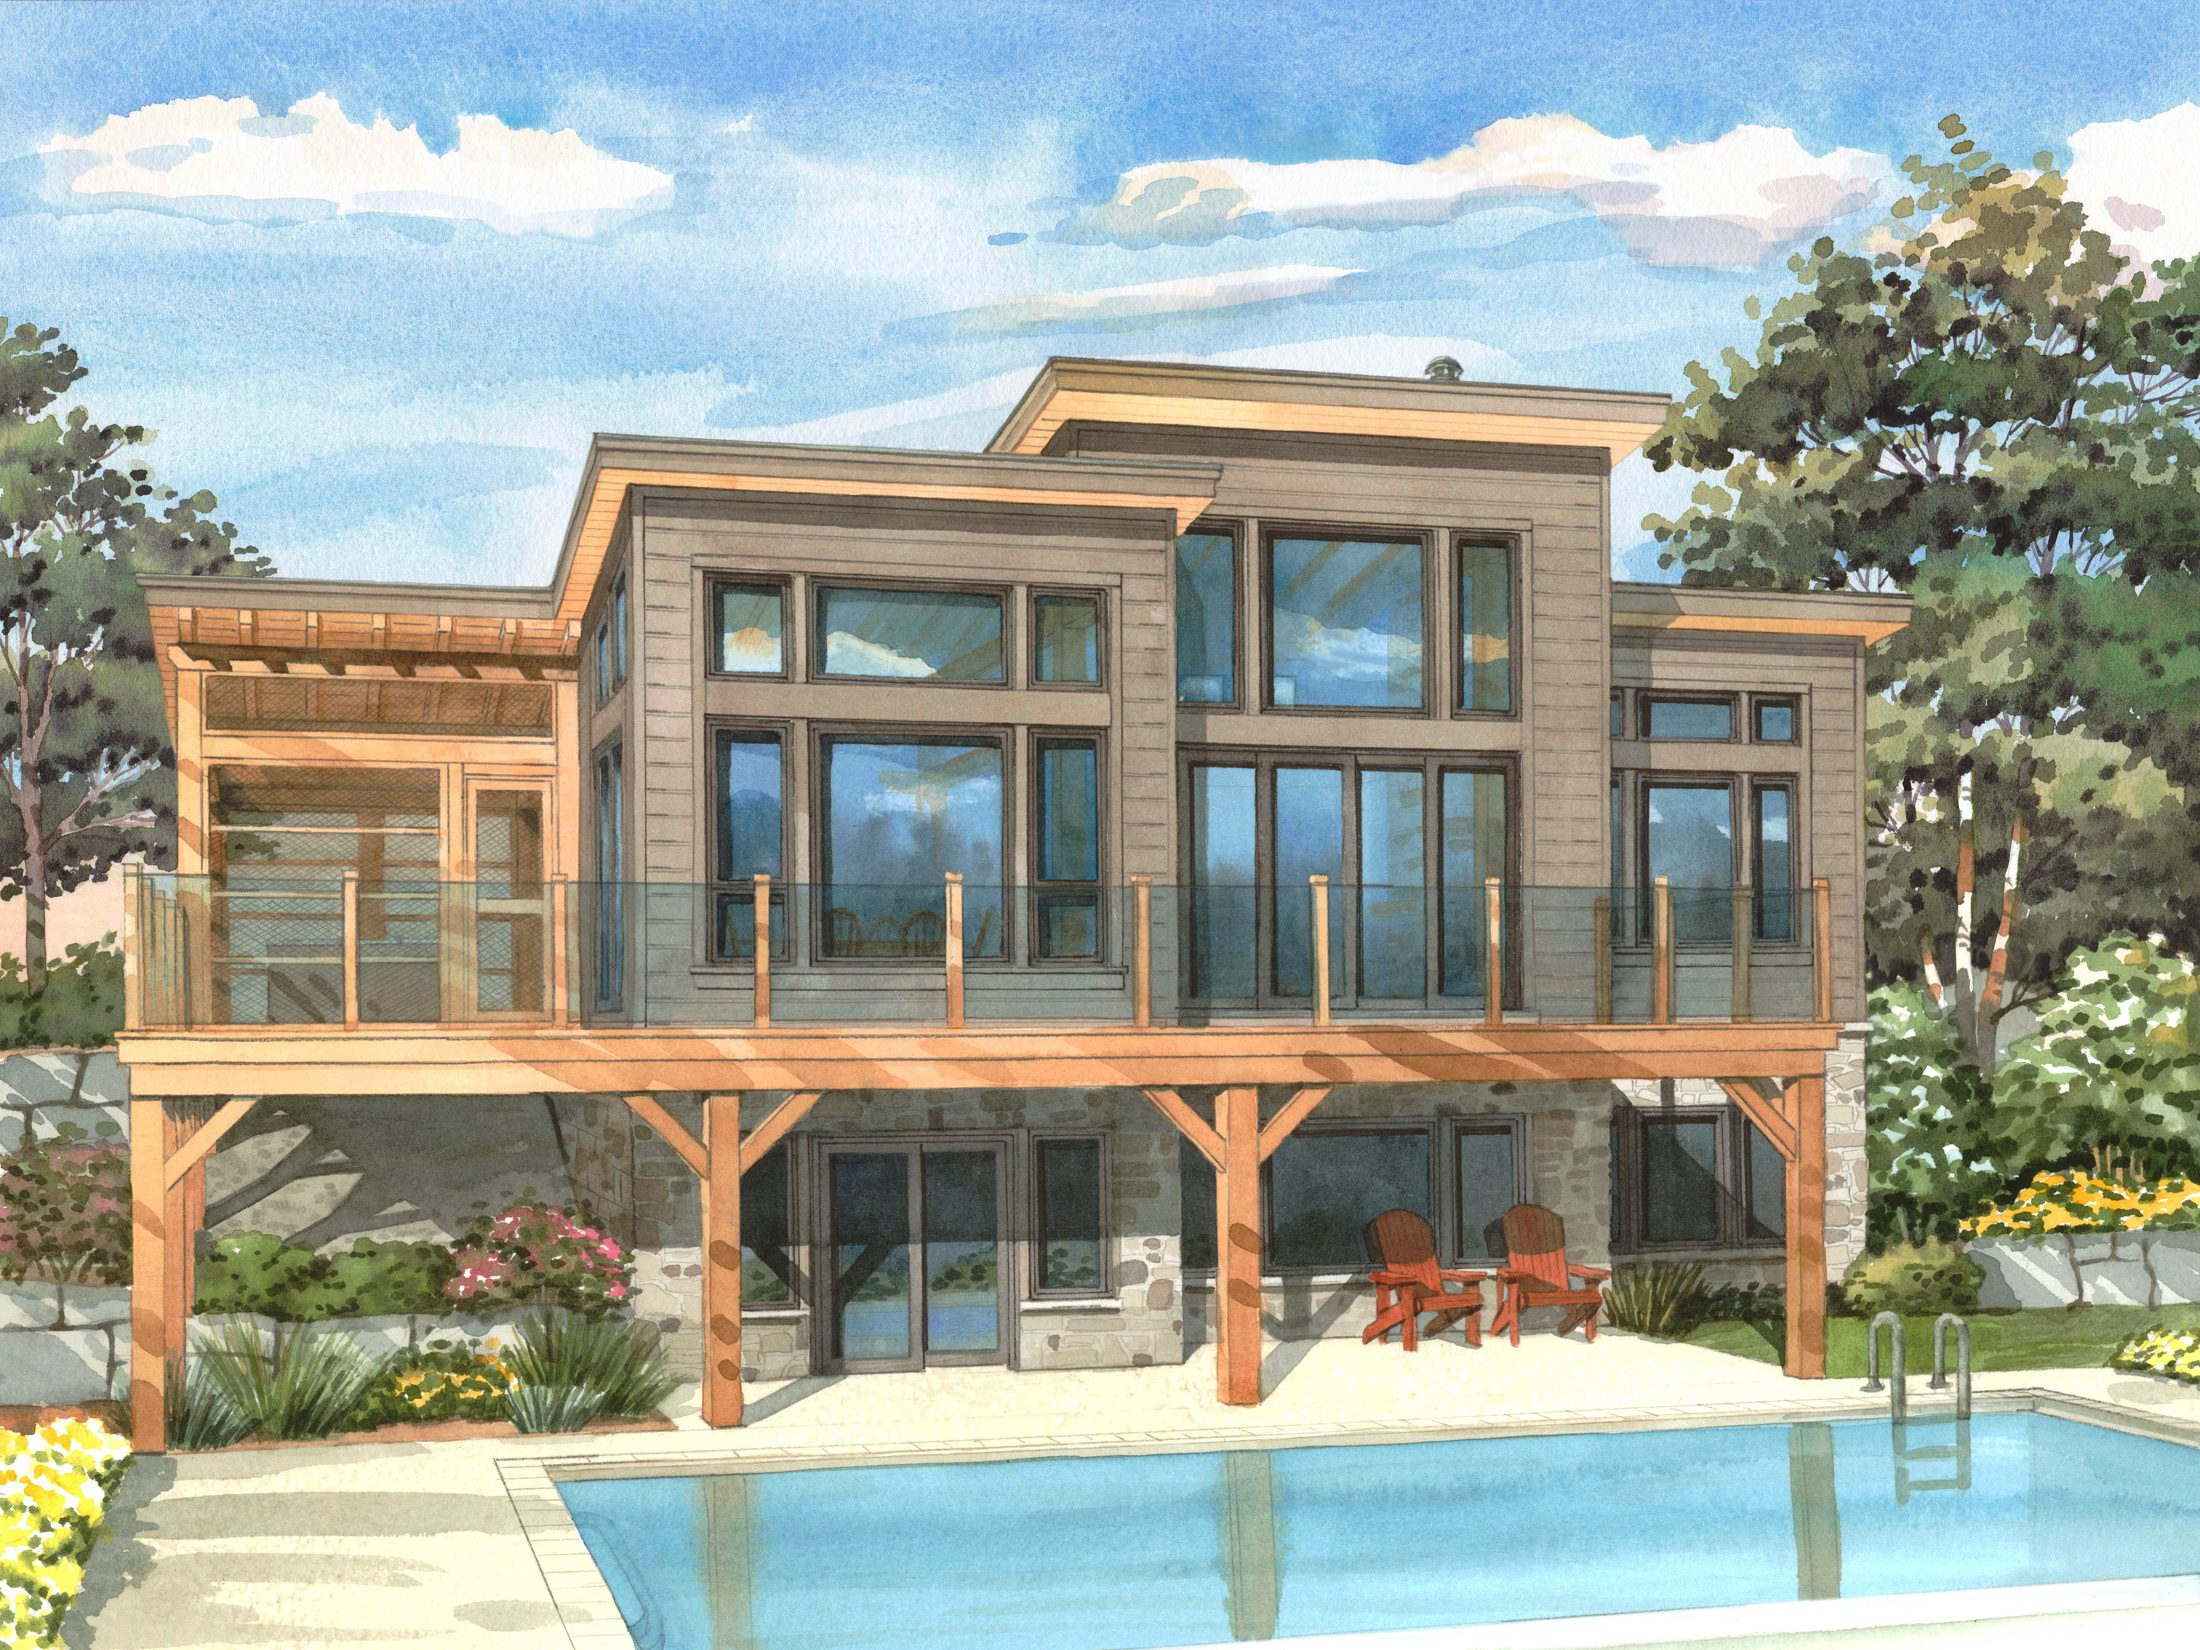 Normerica Timber Frames, House Plan, The Kershaw 3808, Watercolour, Rear